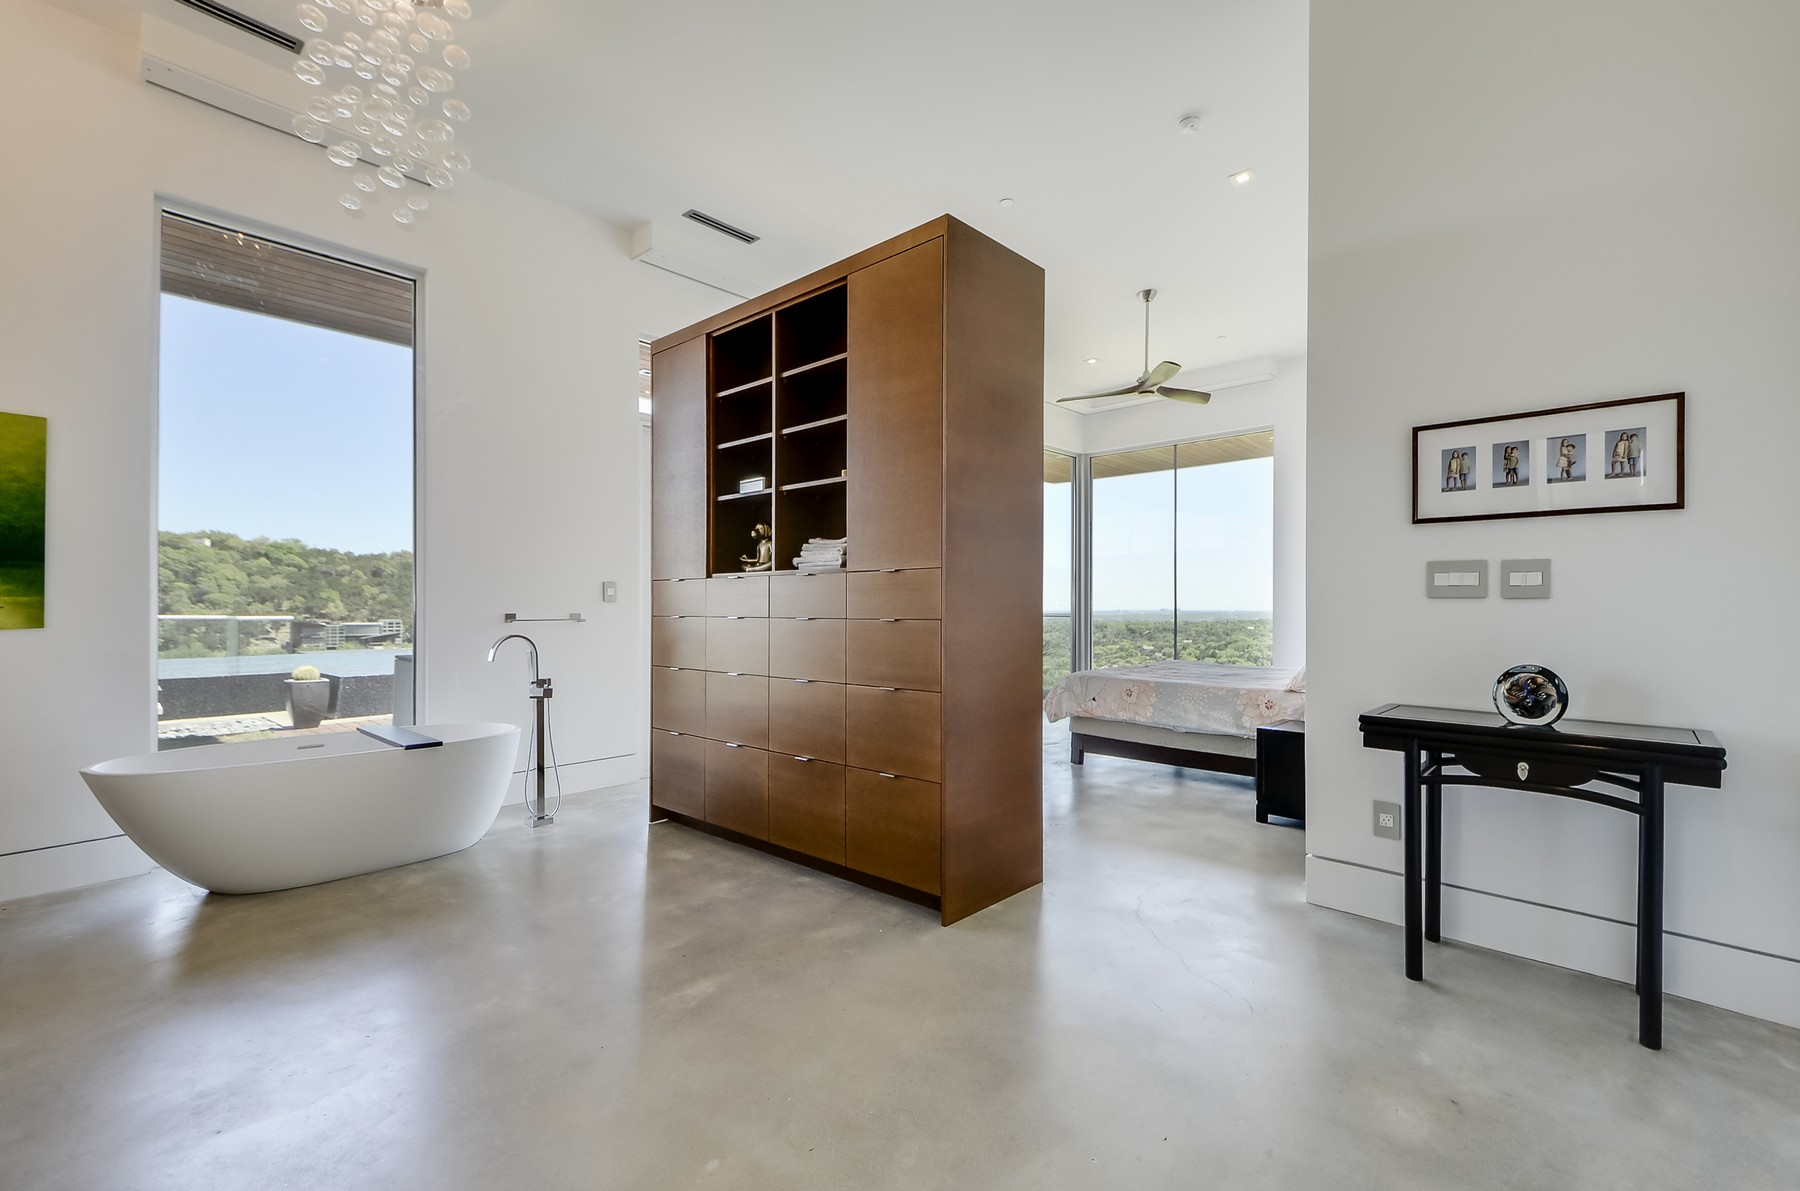 Additional photo for property listing at Environmentally Conscience Architectural Gem 303 Cedar Oak Dr Austin, Texas 78746 United States